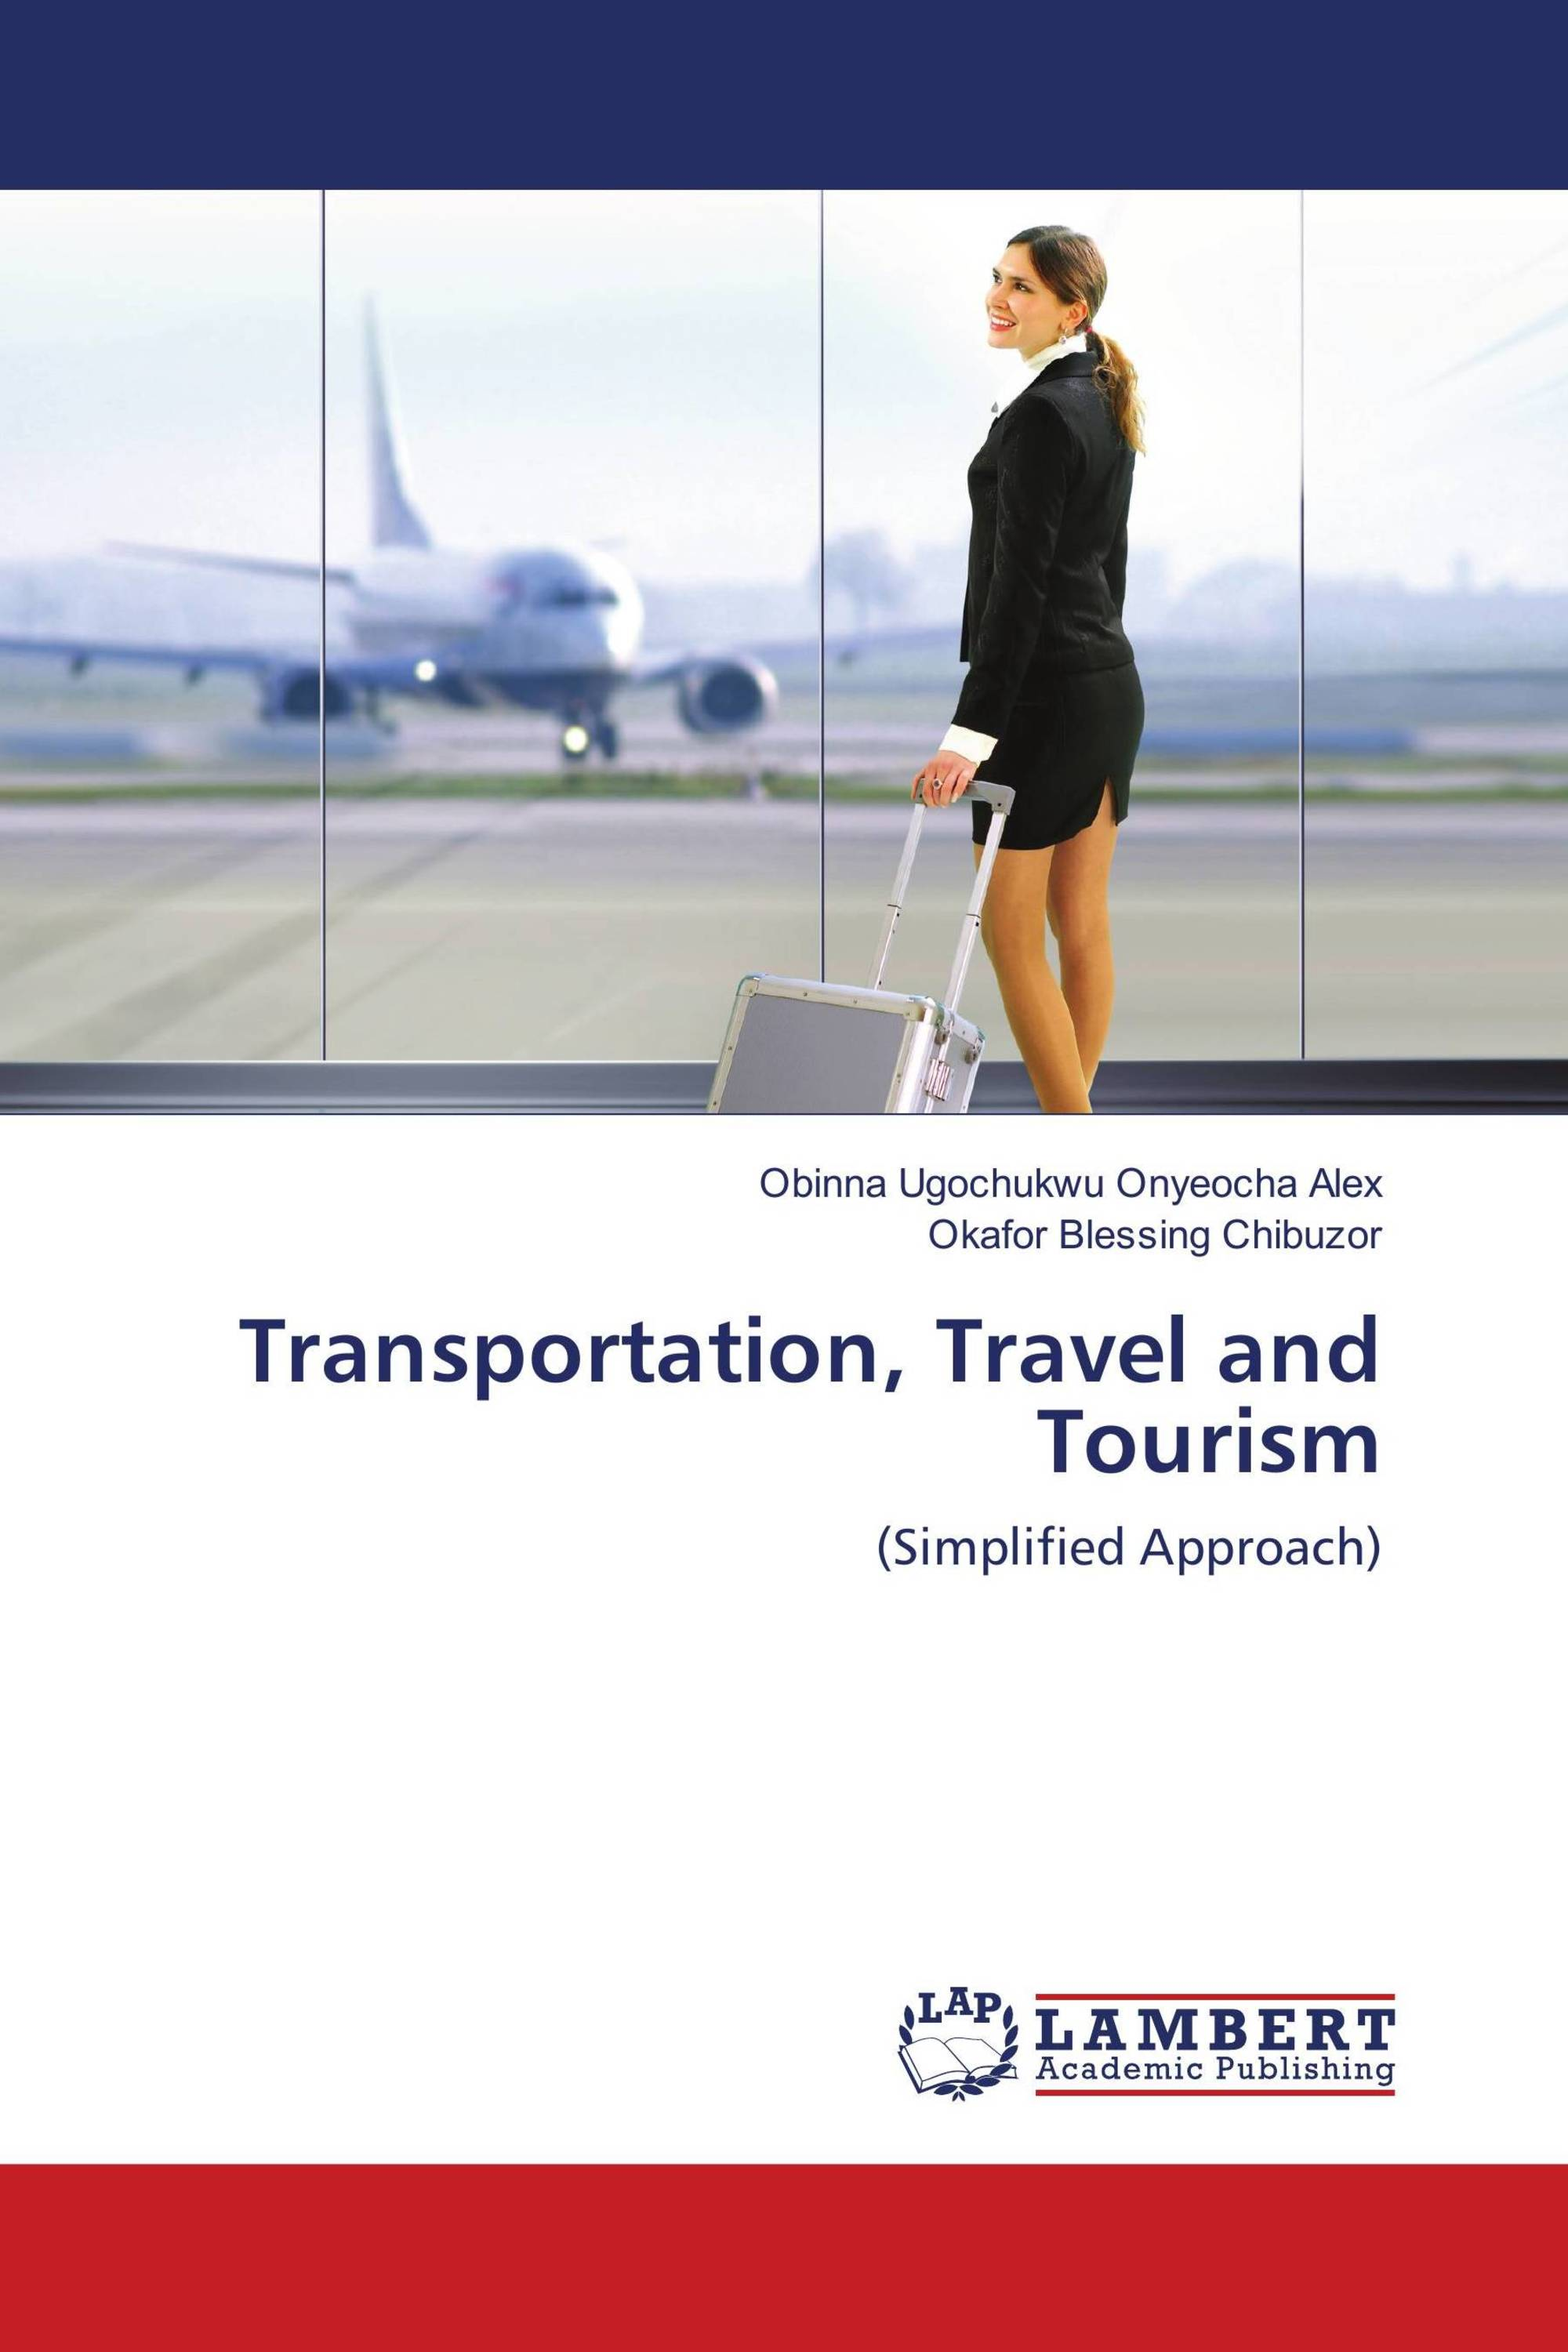 thesis on tourism development in nigeria The effect of policy measures on entrepreneurship development thesis publications other problems of entrepreneurship development in nigeria also.